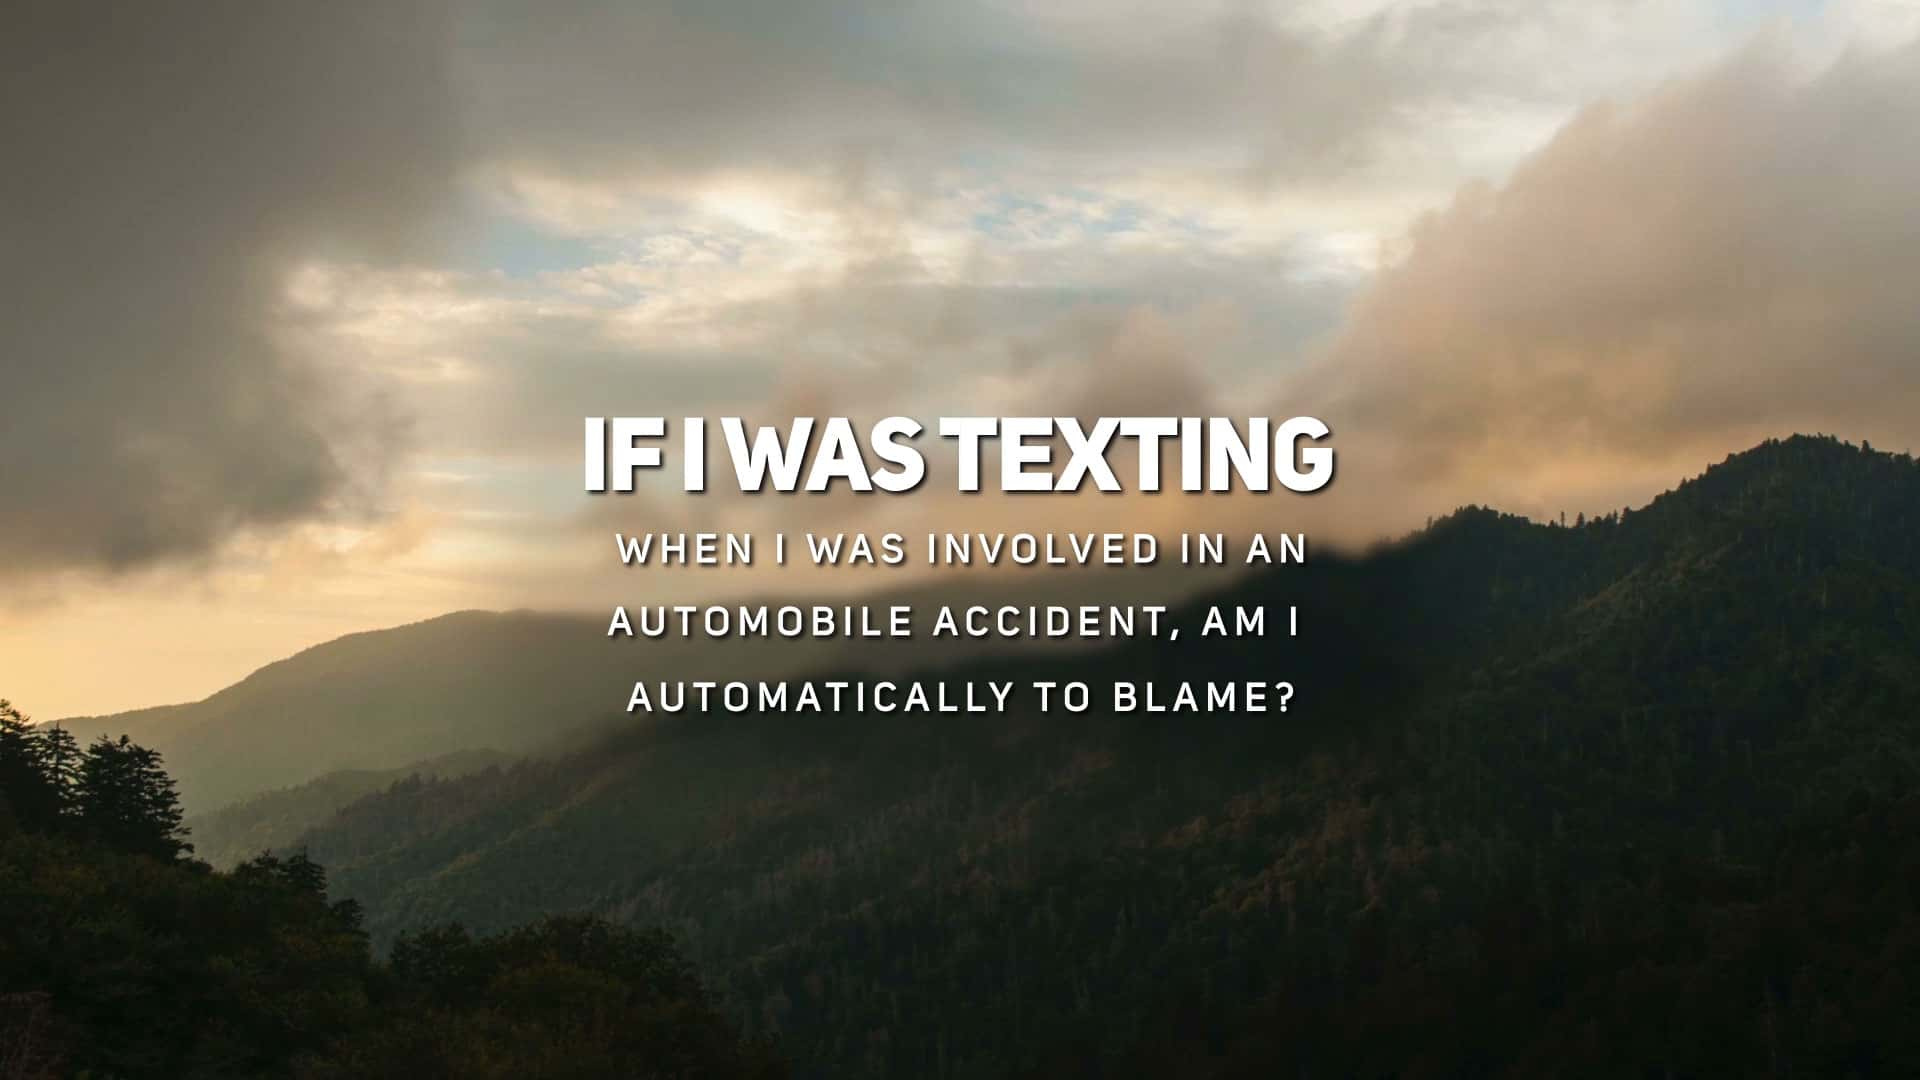 If I was Texting When I was Involved in an Automobile Accident, Am I Automatically to Blame